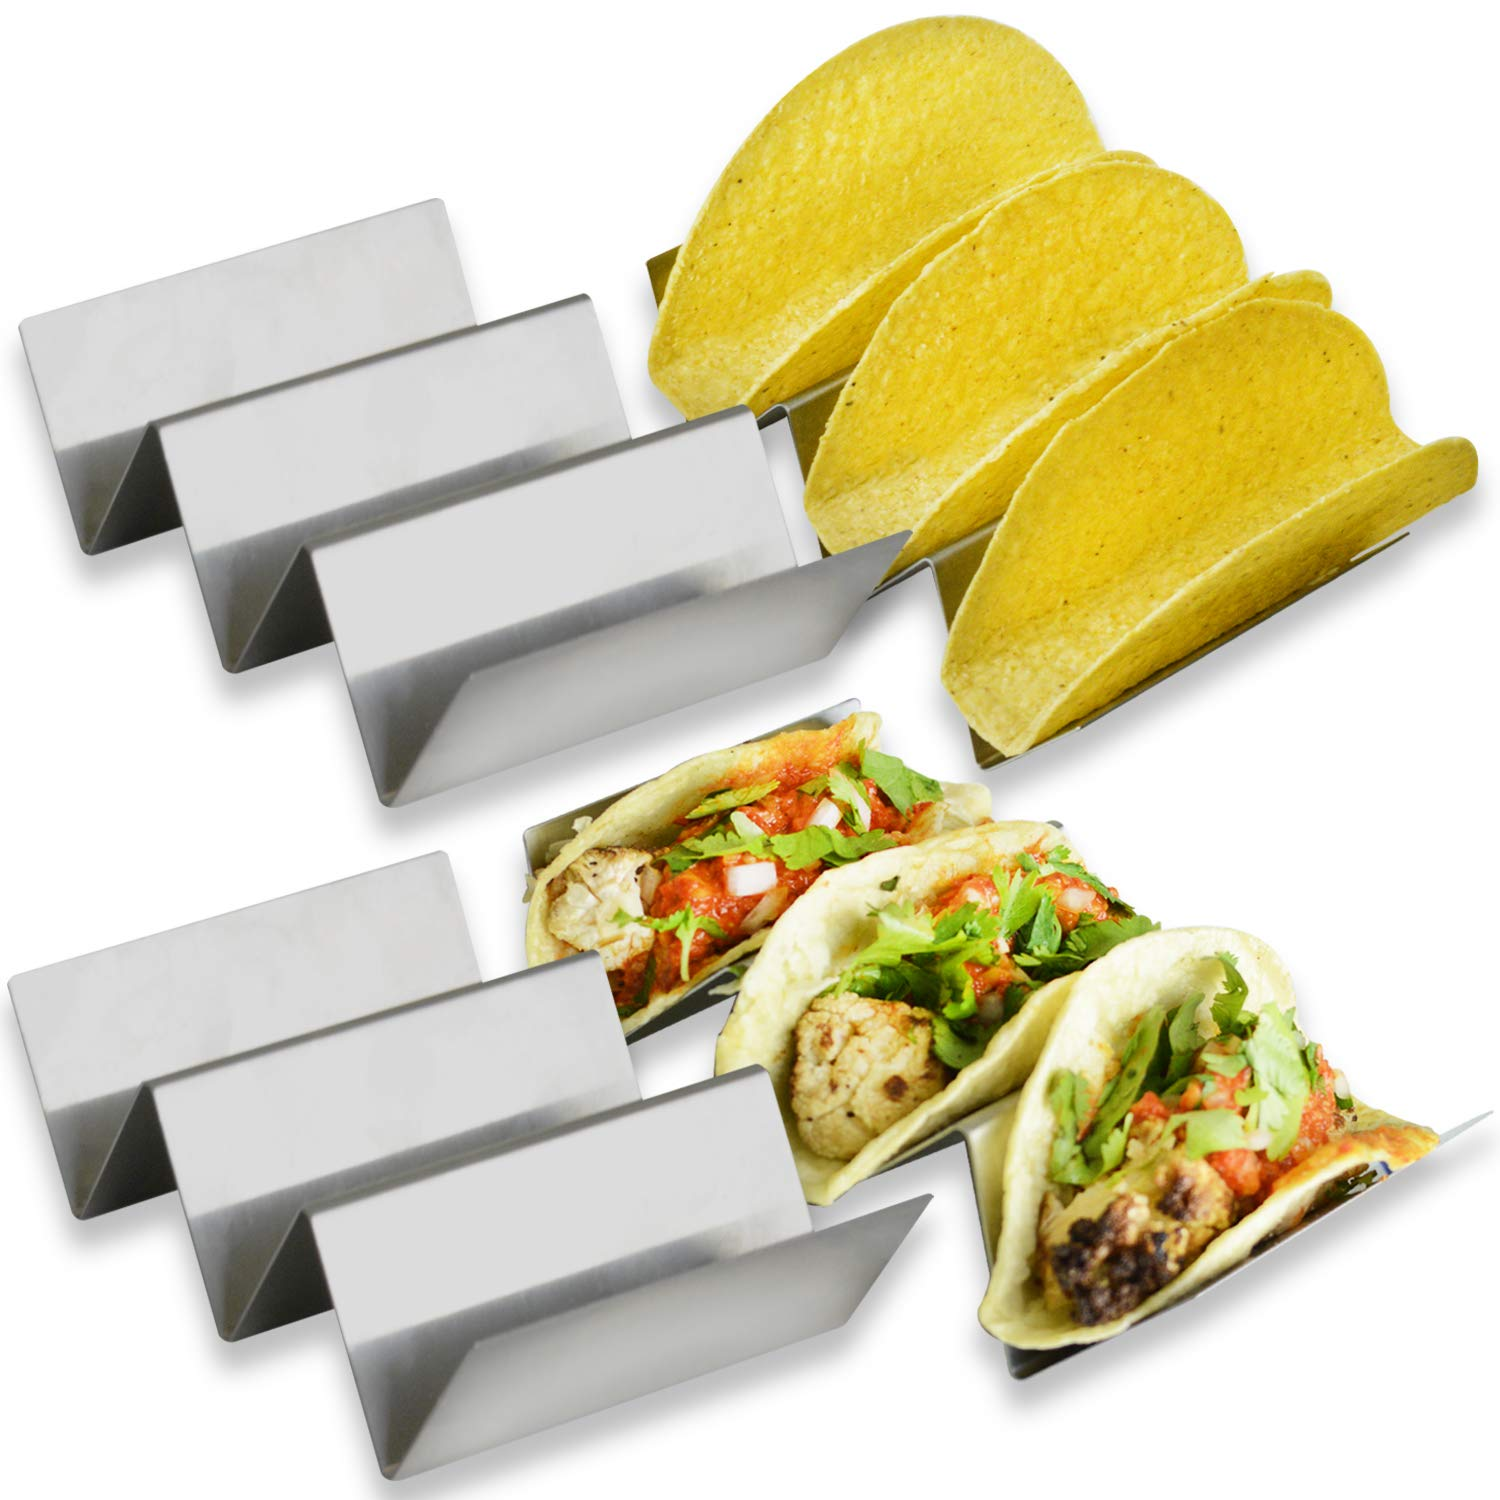 Stylish Taco Holder By Zen Earth Kitchen – Set Of 4 Stainless Steel Taco Racks – Stable 6.3 x 4 Inch Taco Tray Fits Most Plates – Oven & Dishwasher Safe Taco Shell Holder – Holds Up To 3 Tacos Each(4)